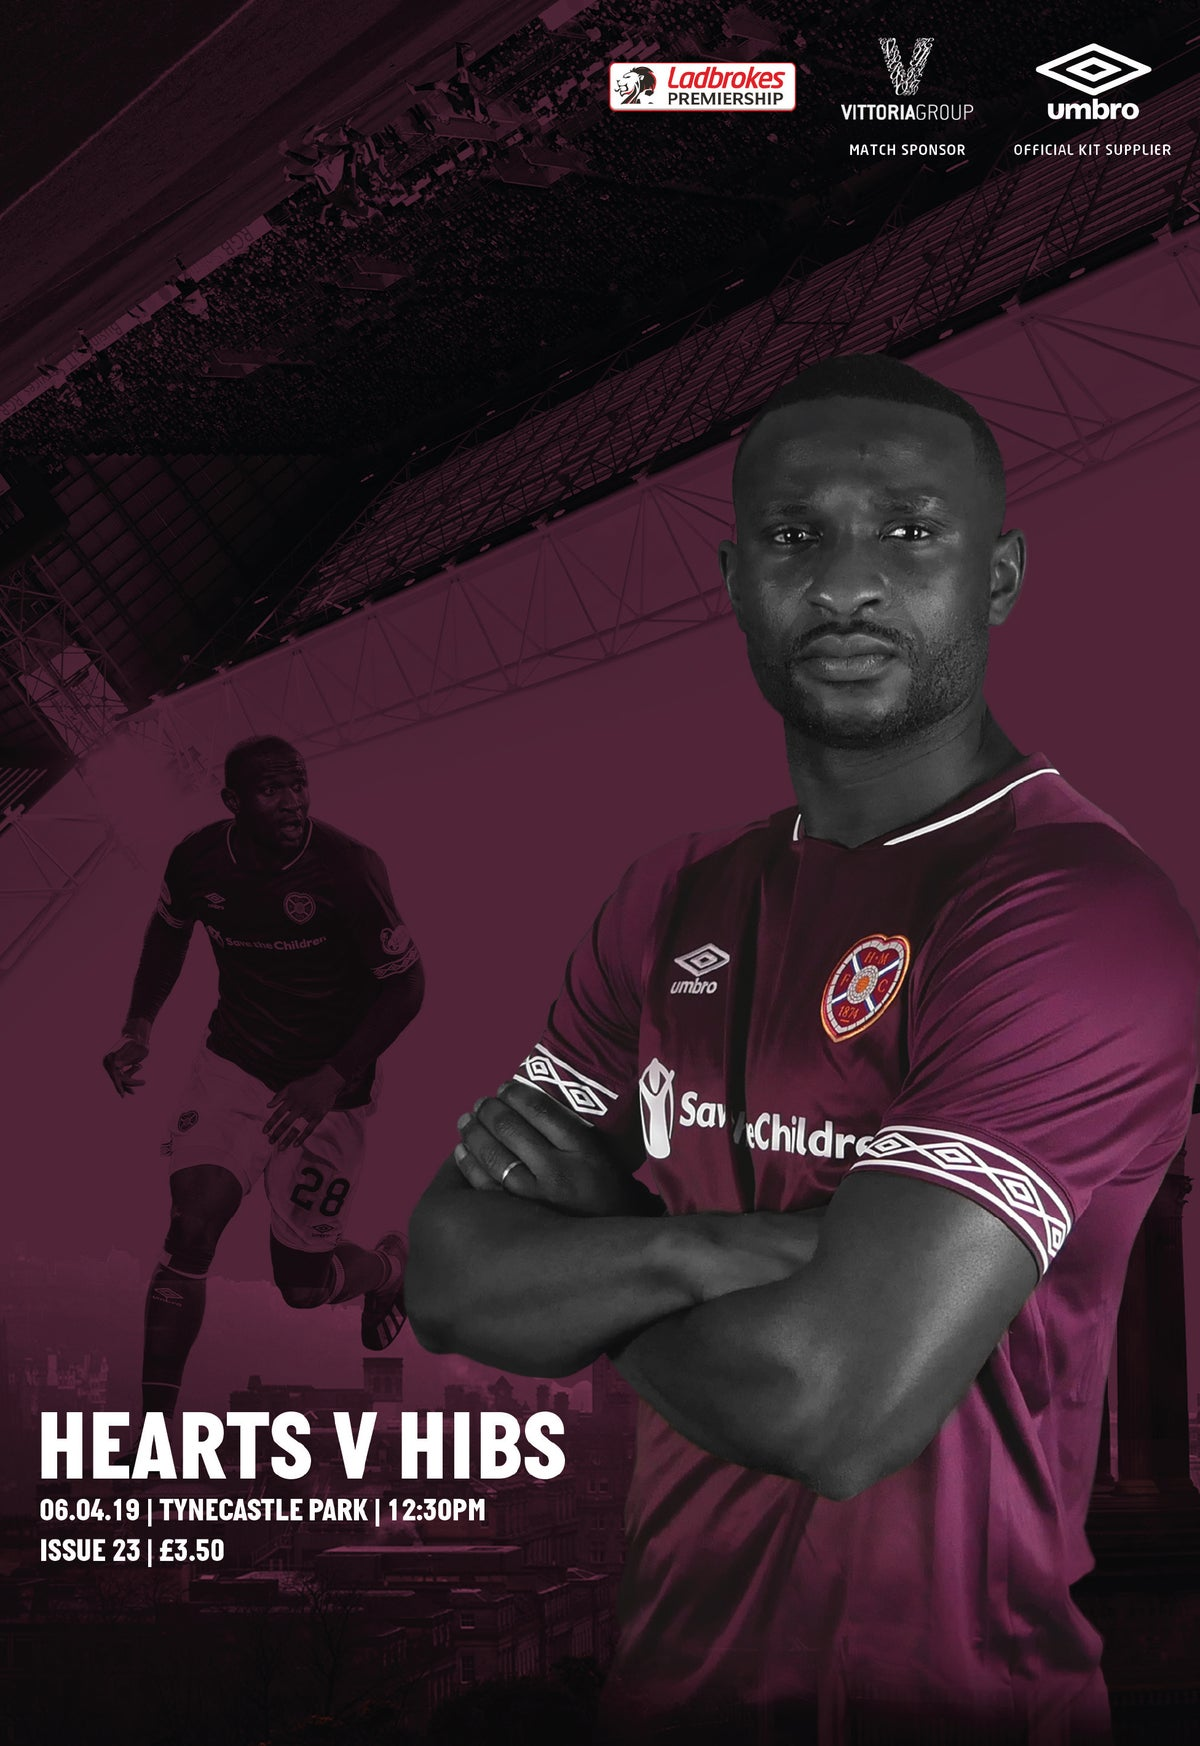 Image of Hearts v Hibs, 6th April 2019